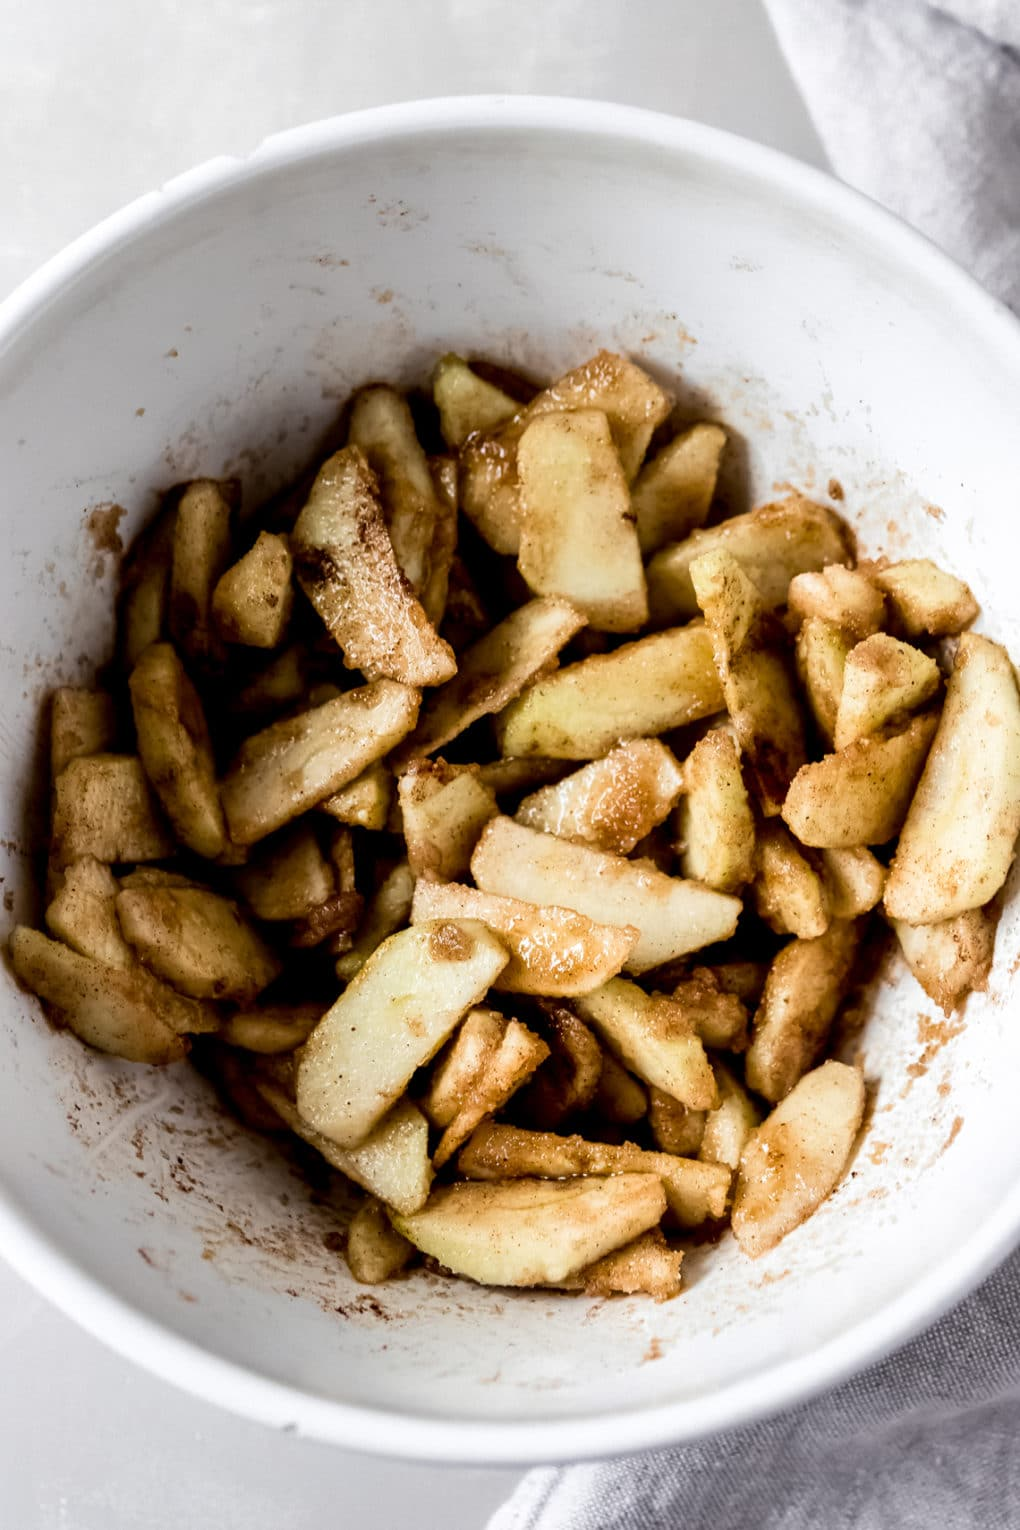 raw apples in a large mixing bowl mixed with cinnamon, sugar, and spices